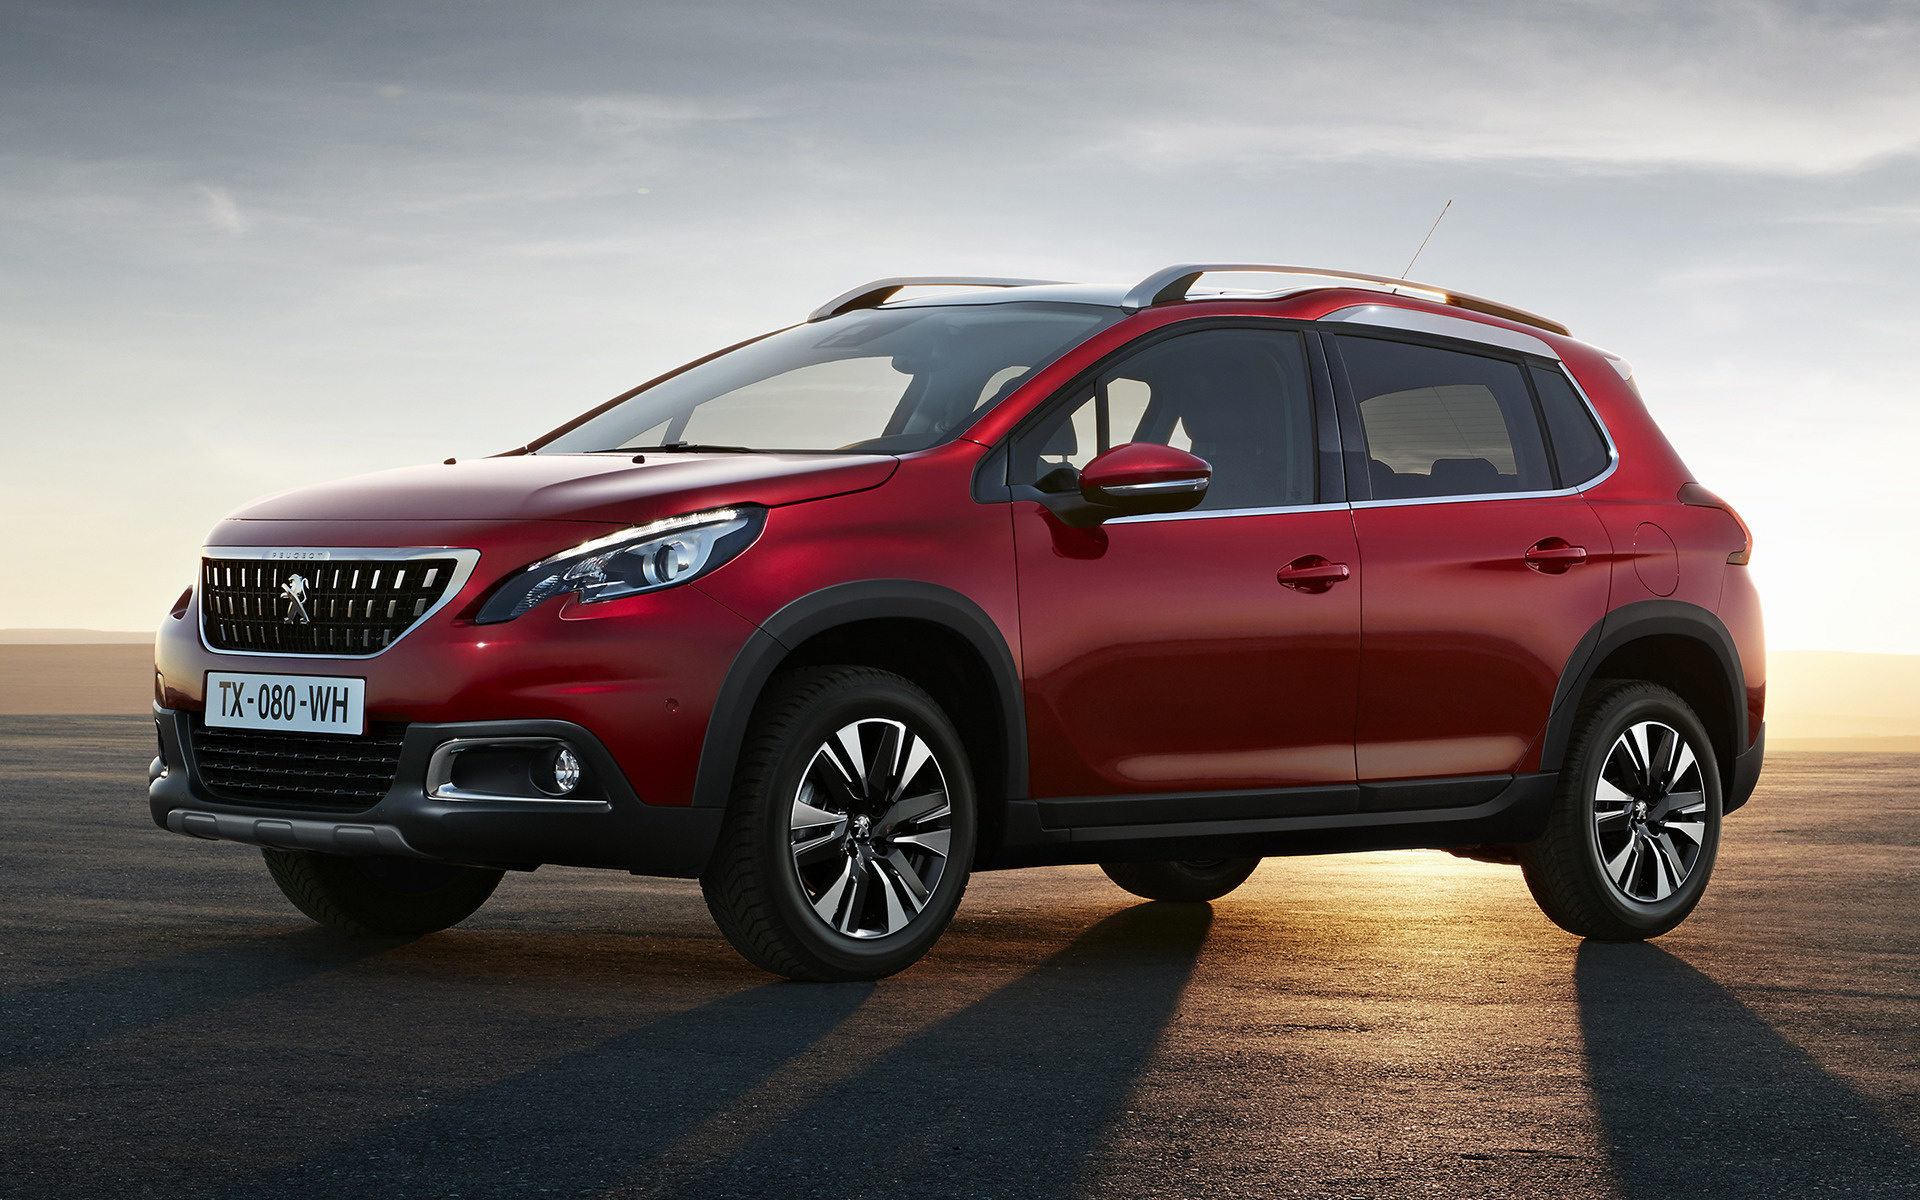 2016 Peugeot 2008 - Wallpapers and HD Images | Car Pixel